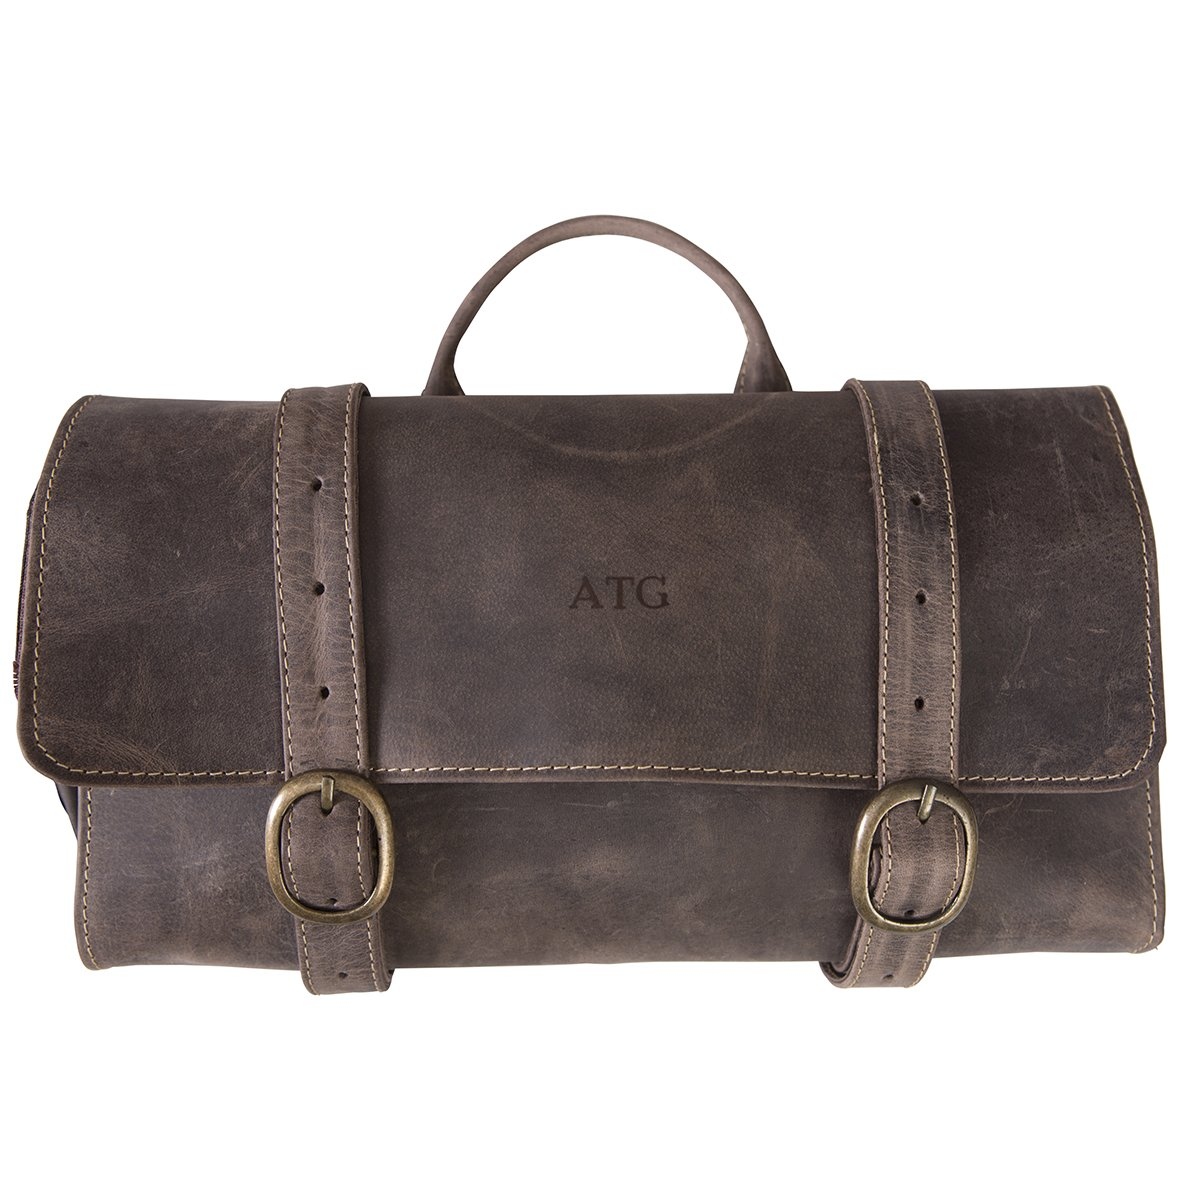 Personalized Distressed Brown Leather Hanging Men's Travel Toiletry Bag - Blind